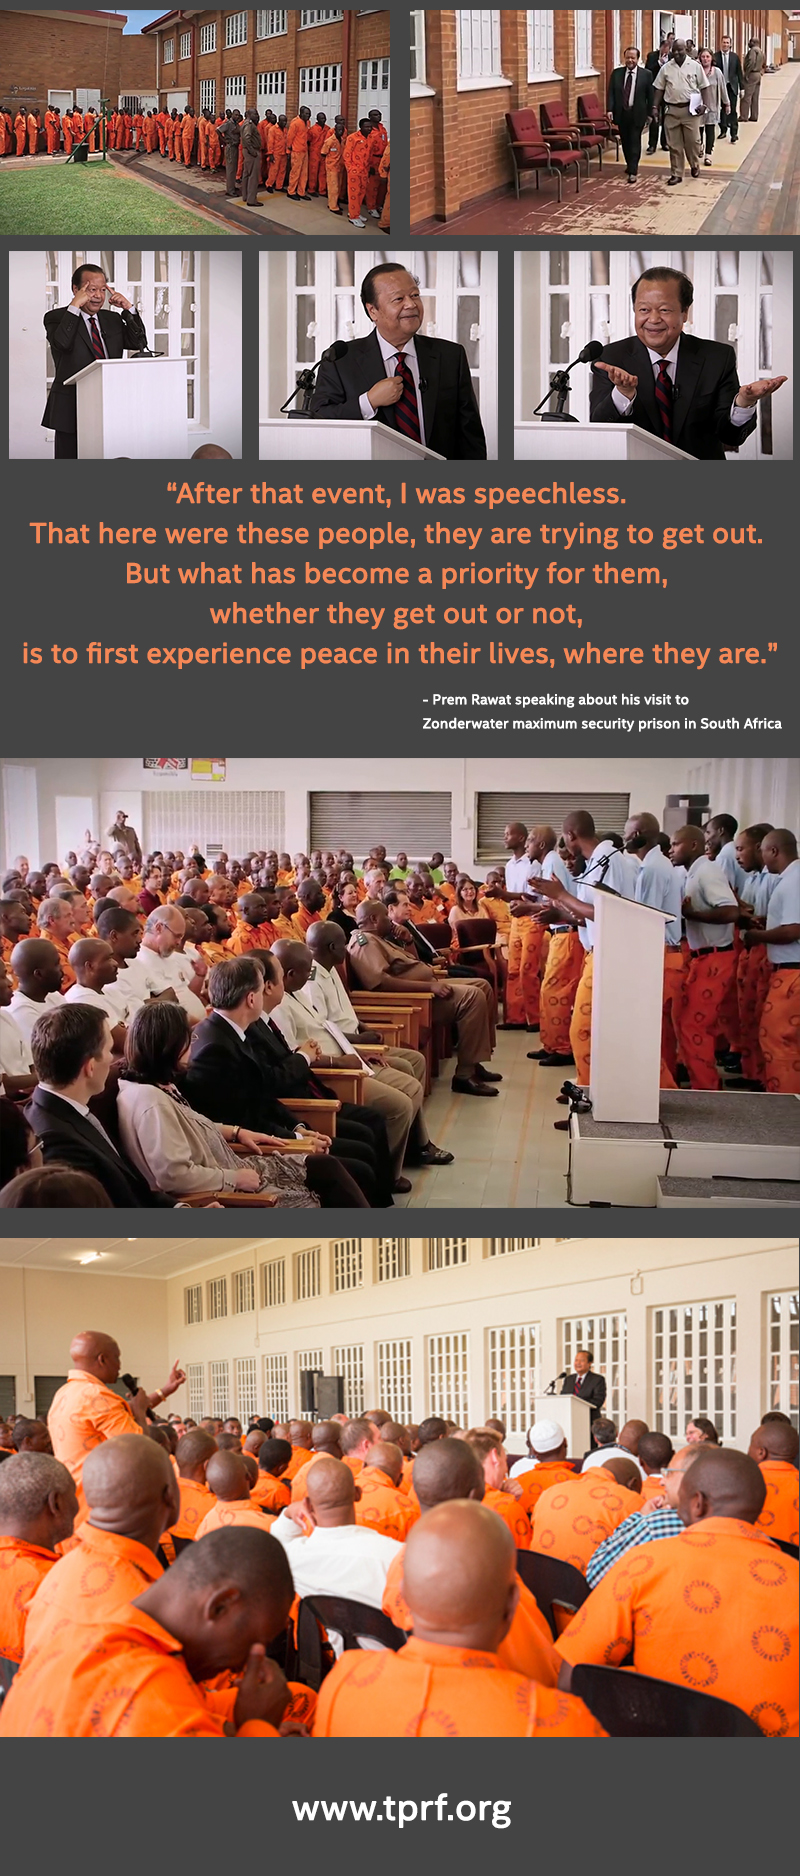 Prem Rawat speaking about his visit to  Zonderwater maximum security prison in South Africa,quote